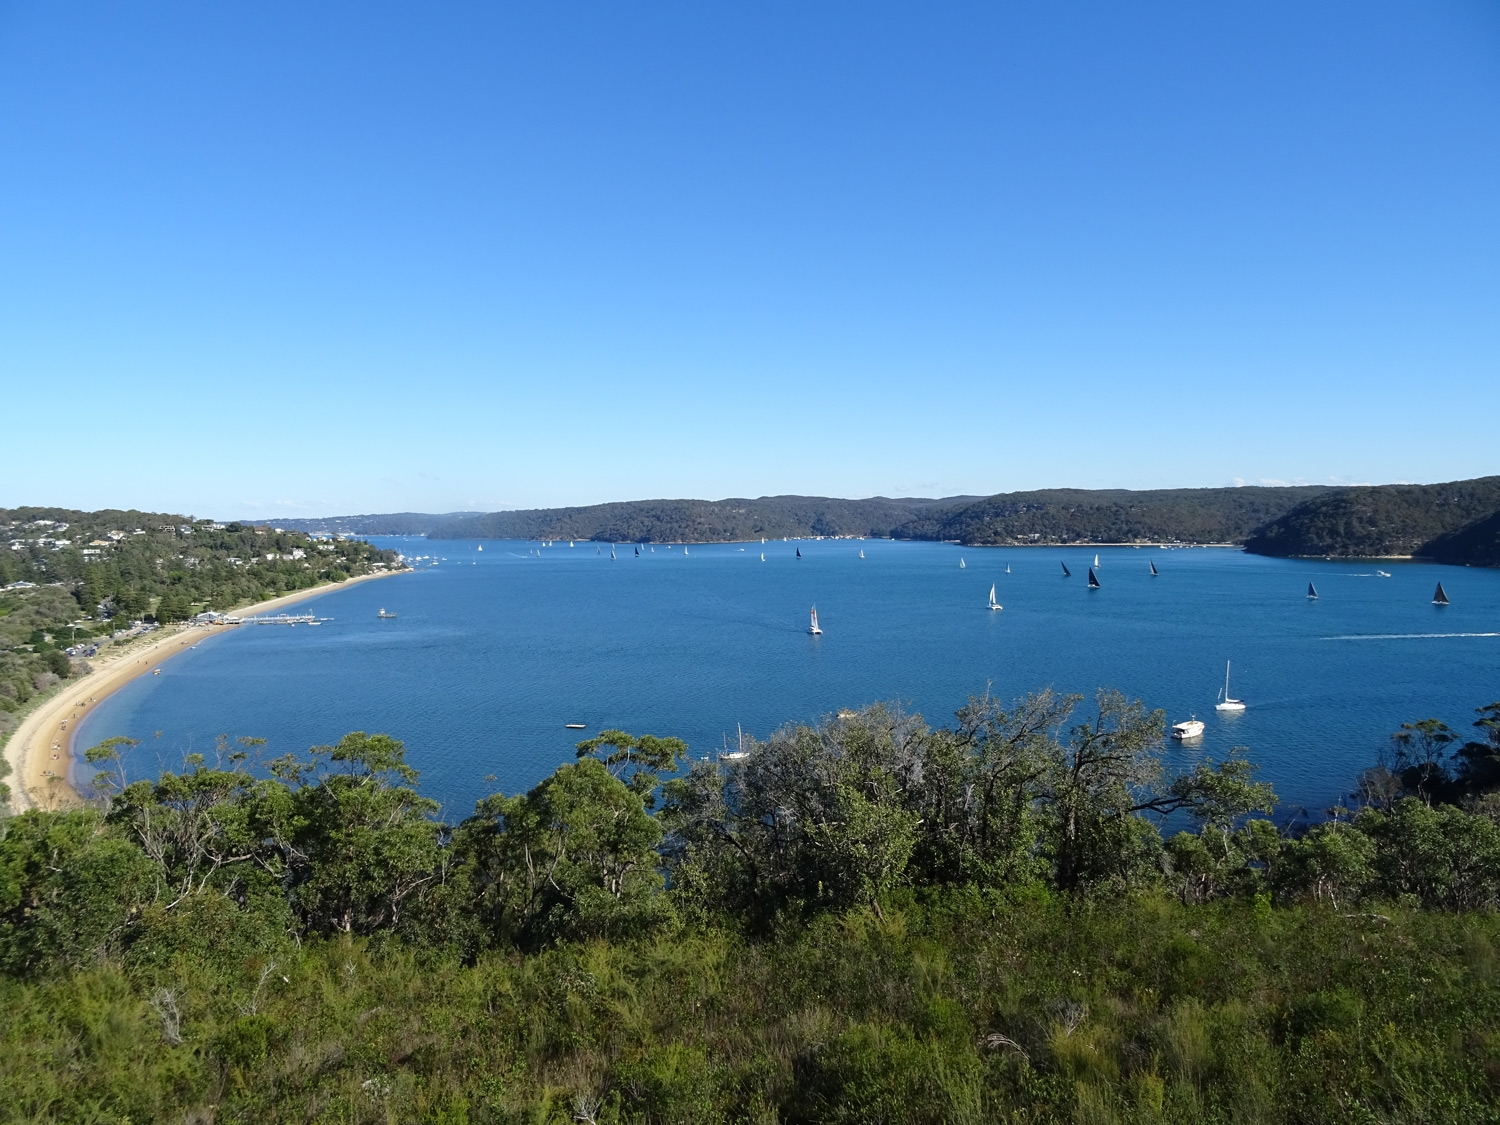 View of Pittwater from midway